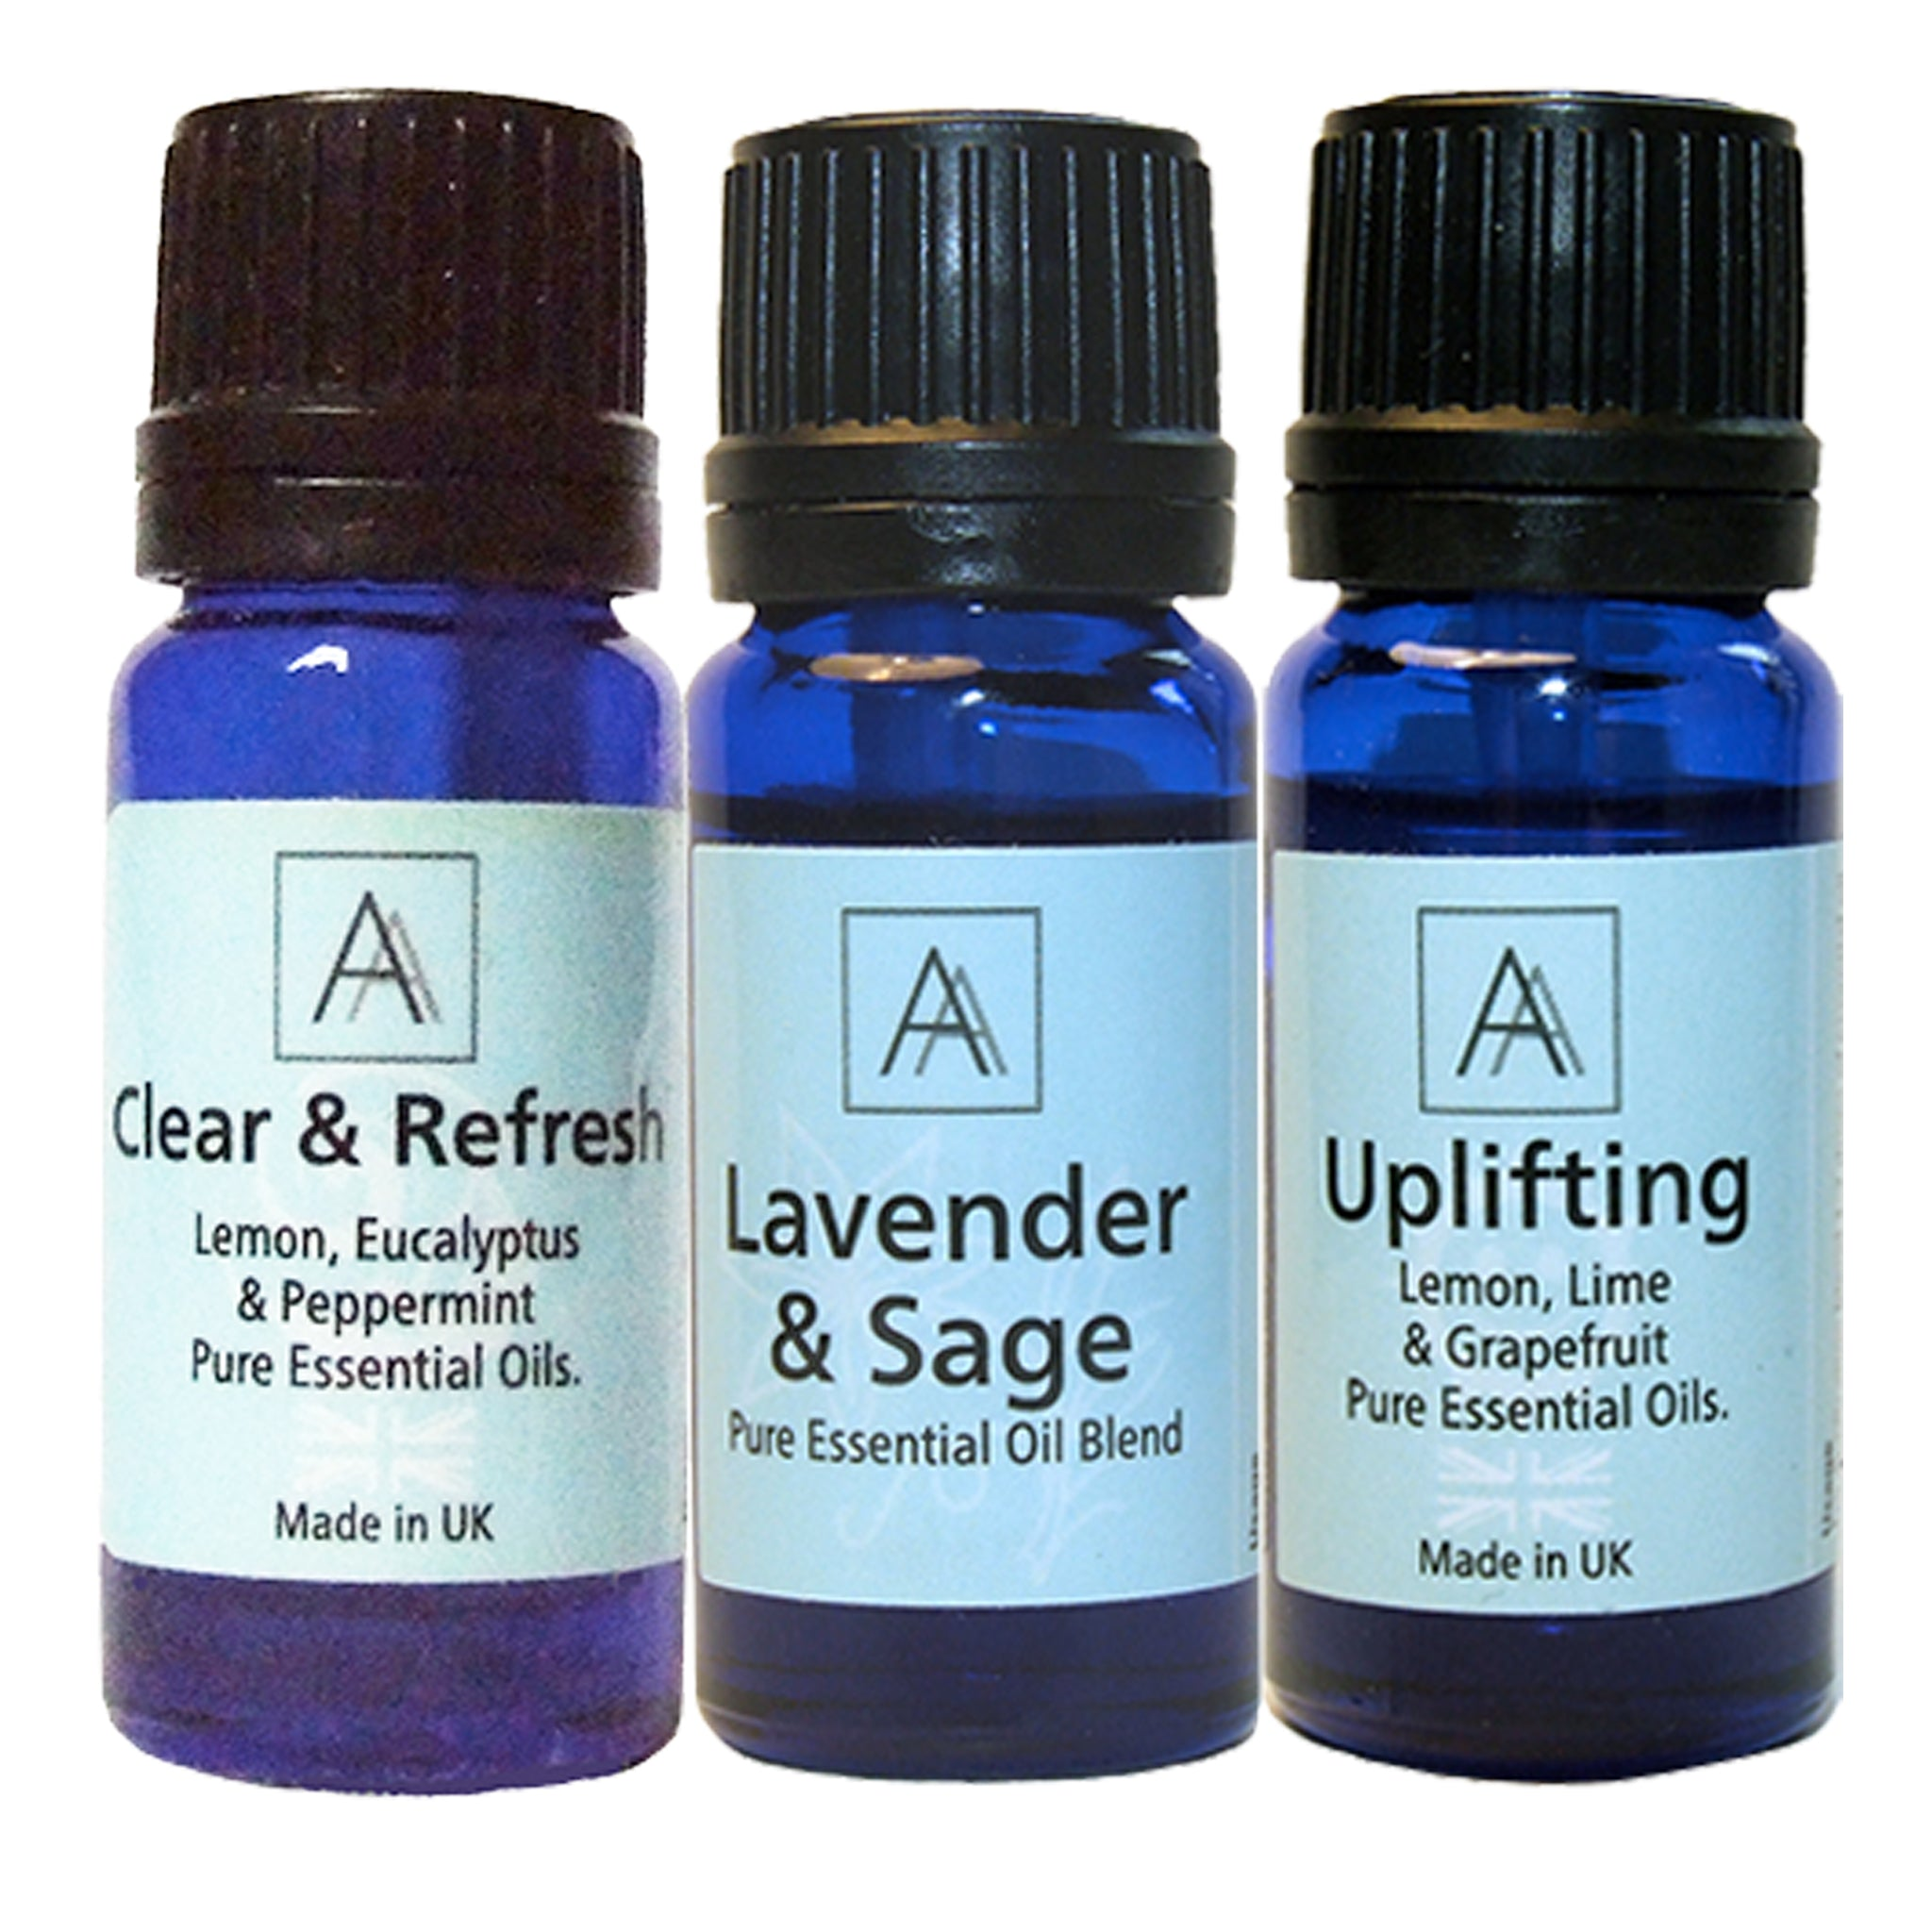 Clear & Refresh, Lavender & Sage and Uplifting